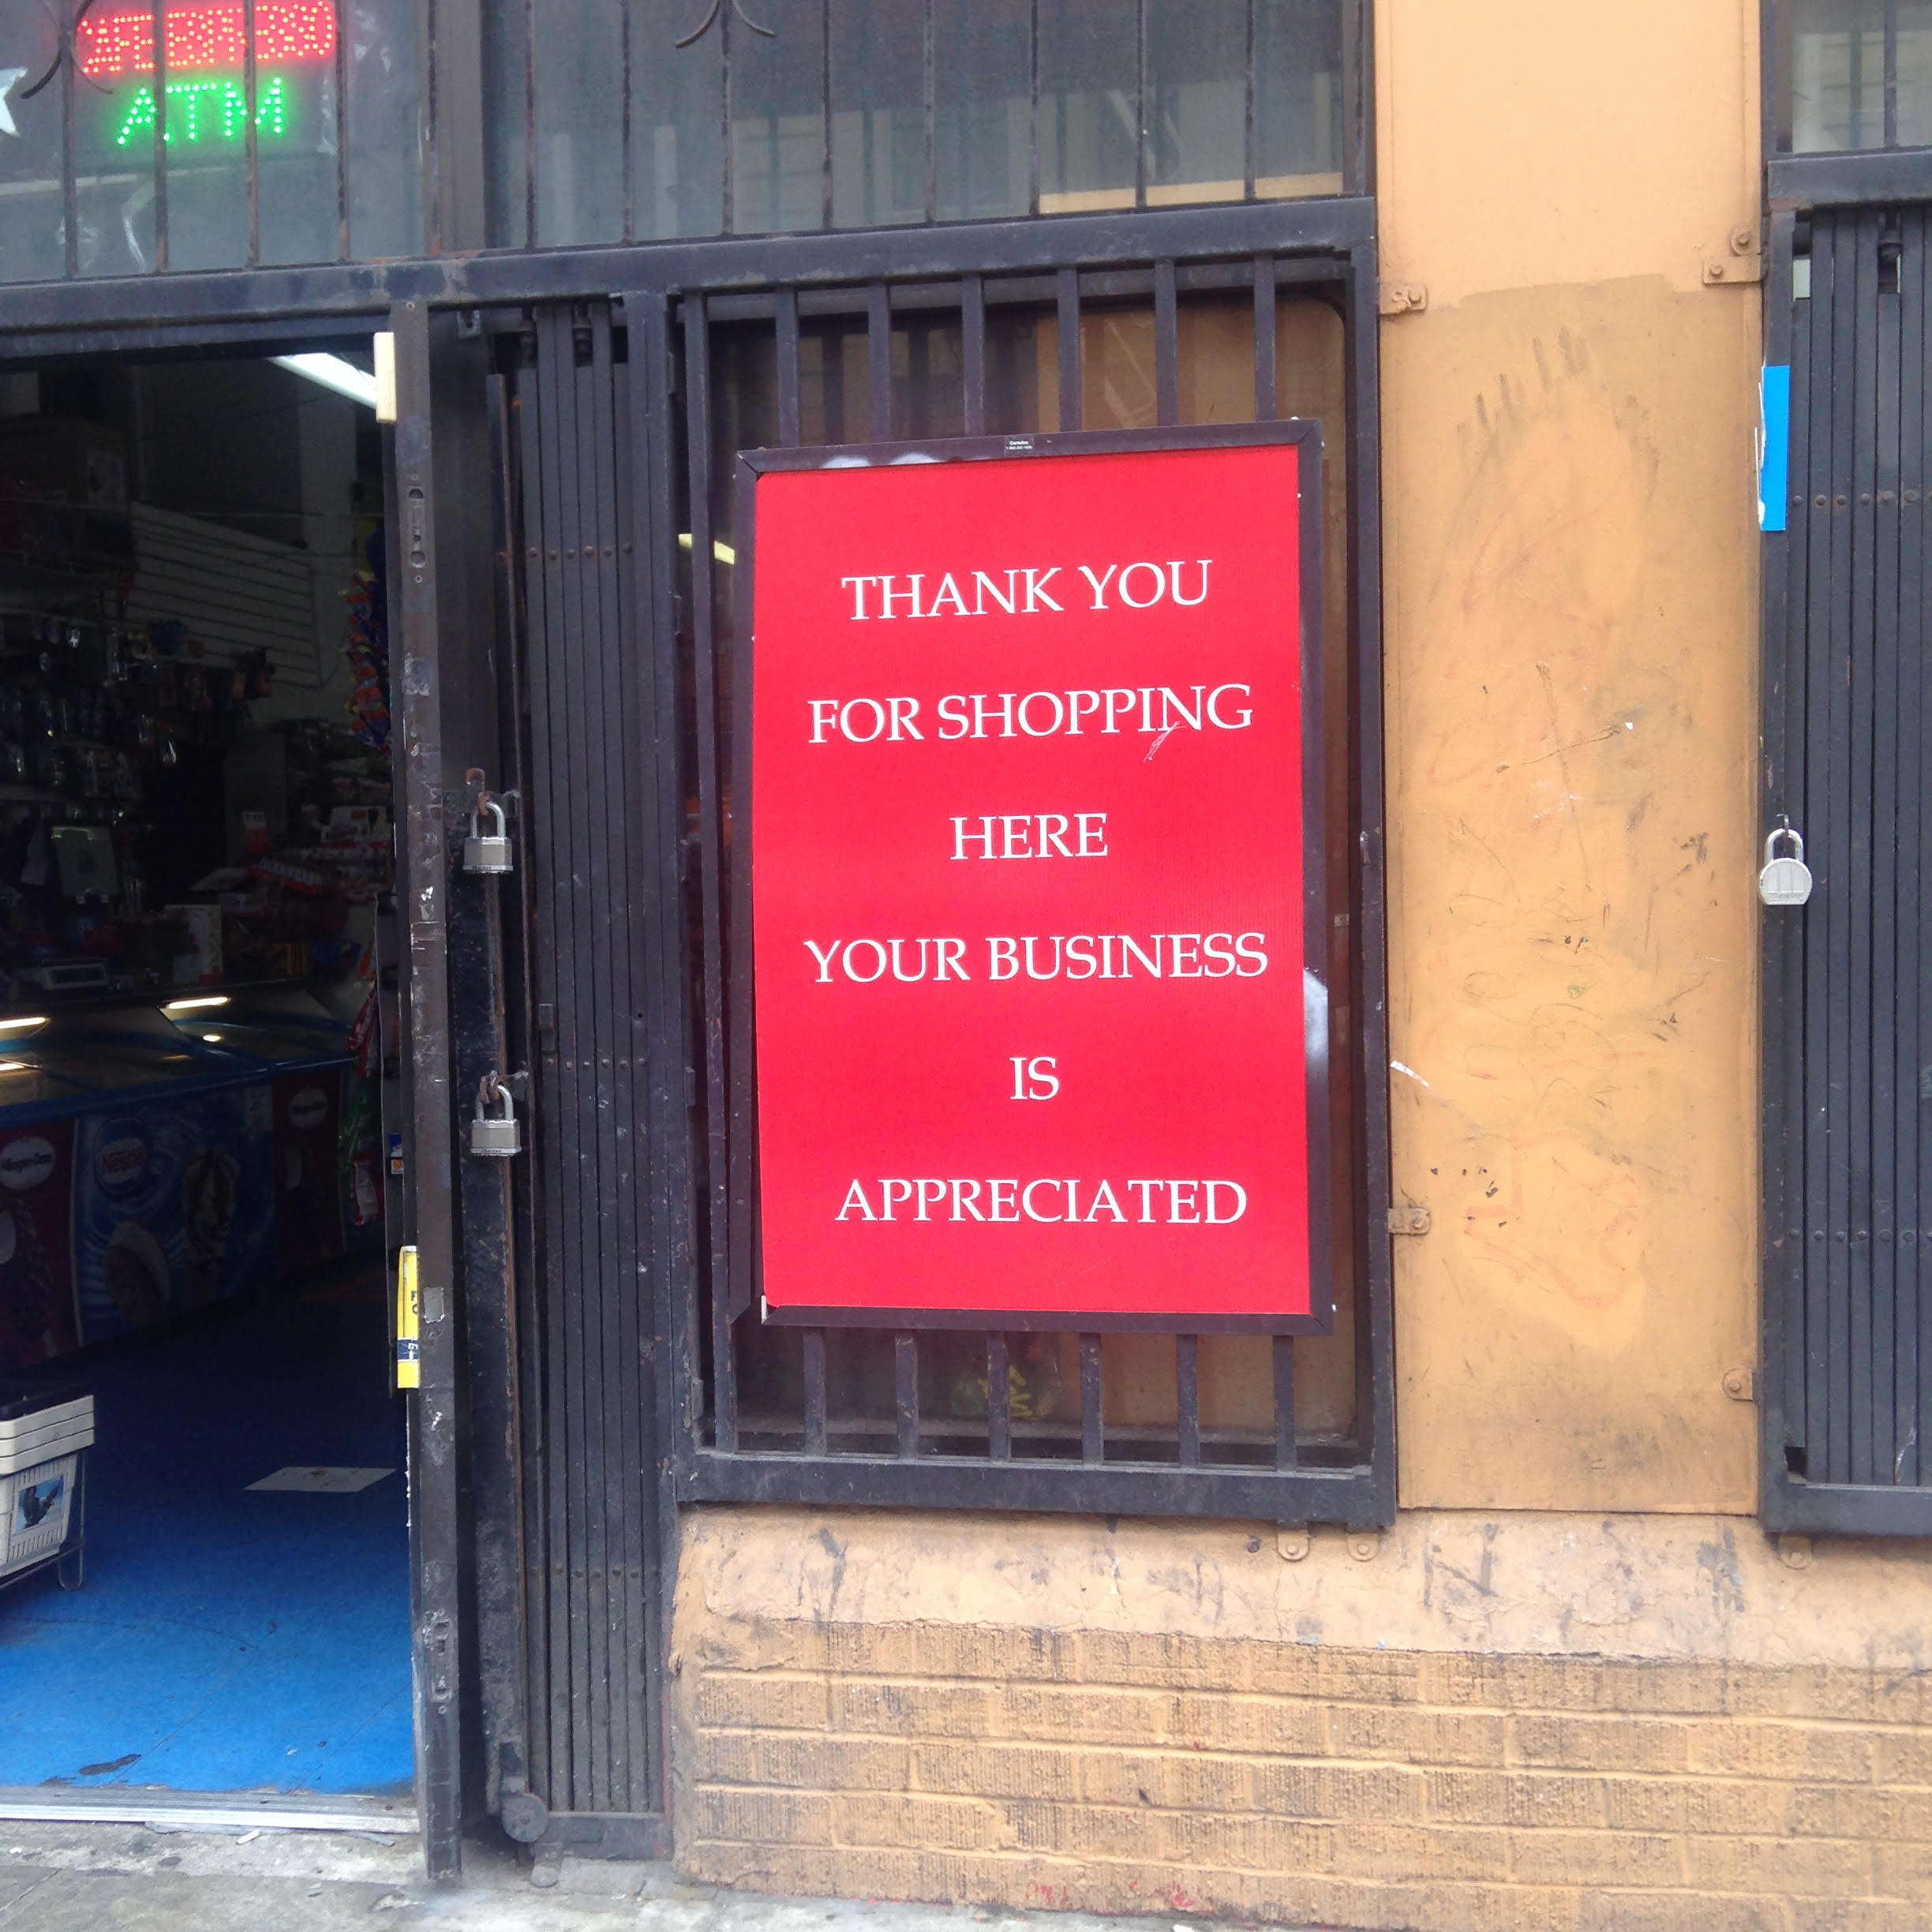 This poster message is seen often throughout the Tenderloin, and in many other central neighborhoods in the US.